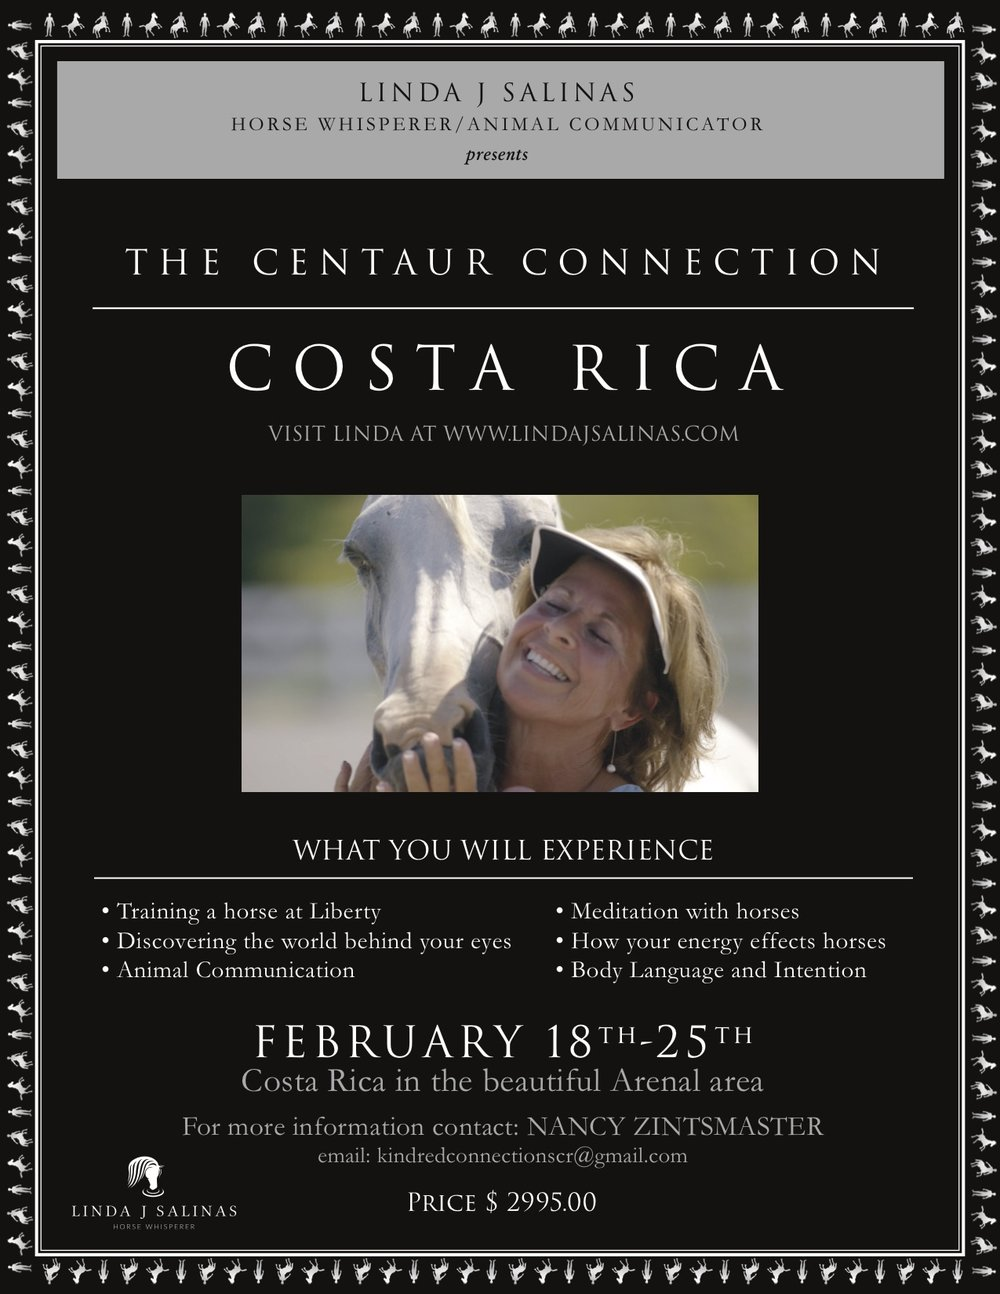 LindasFlyer_Centaur Connection_Costa Rica3-2.jpg